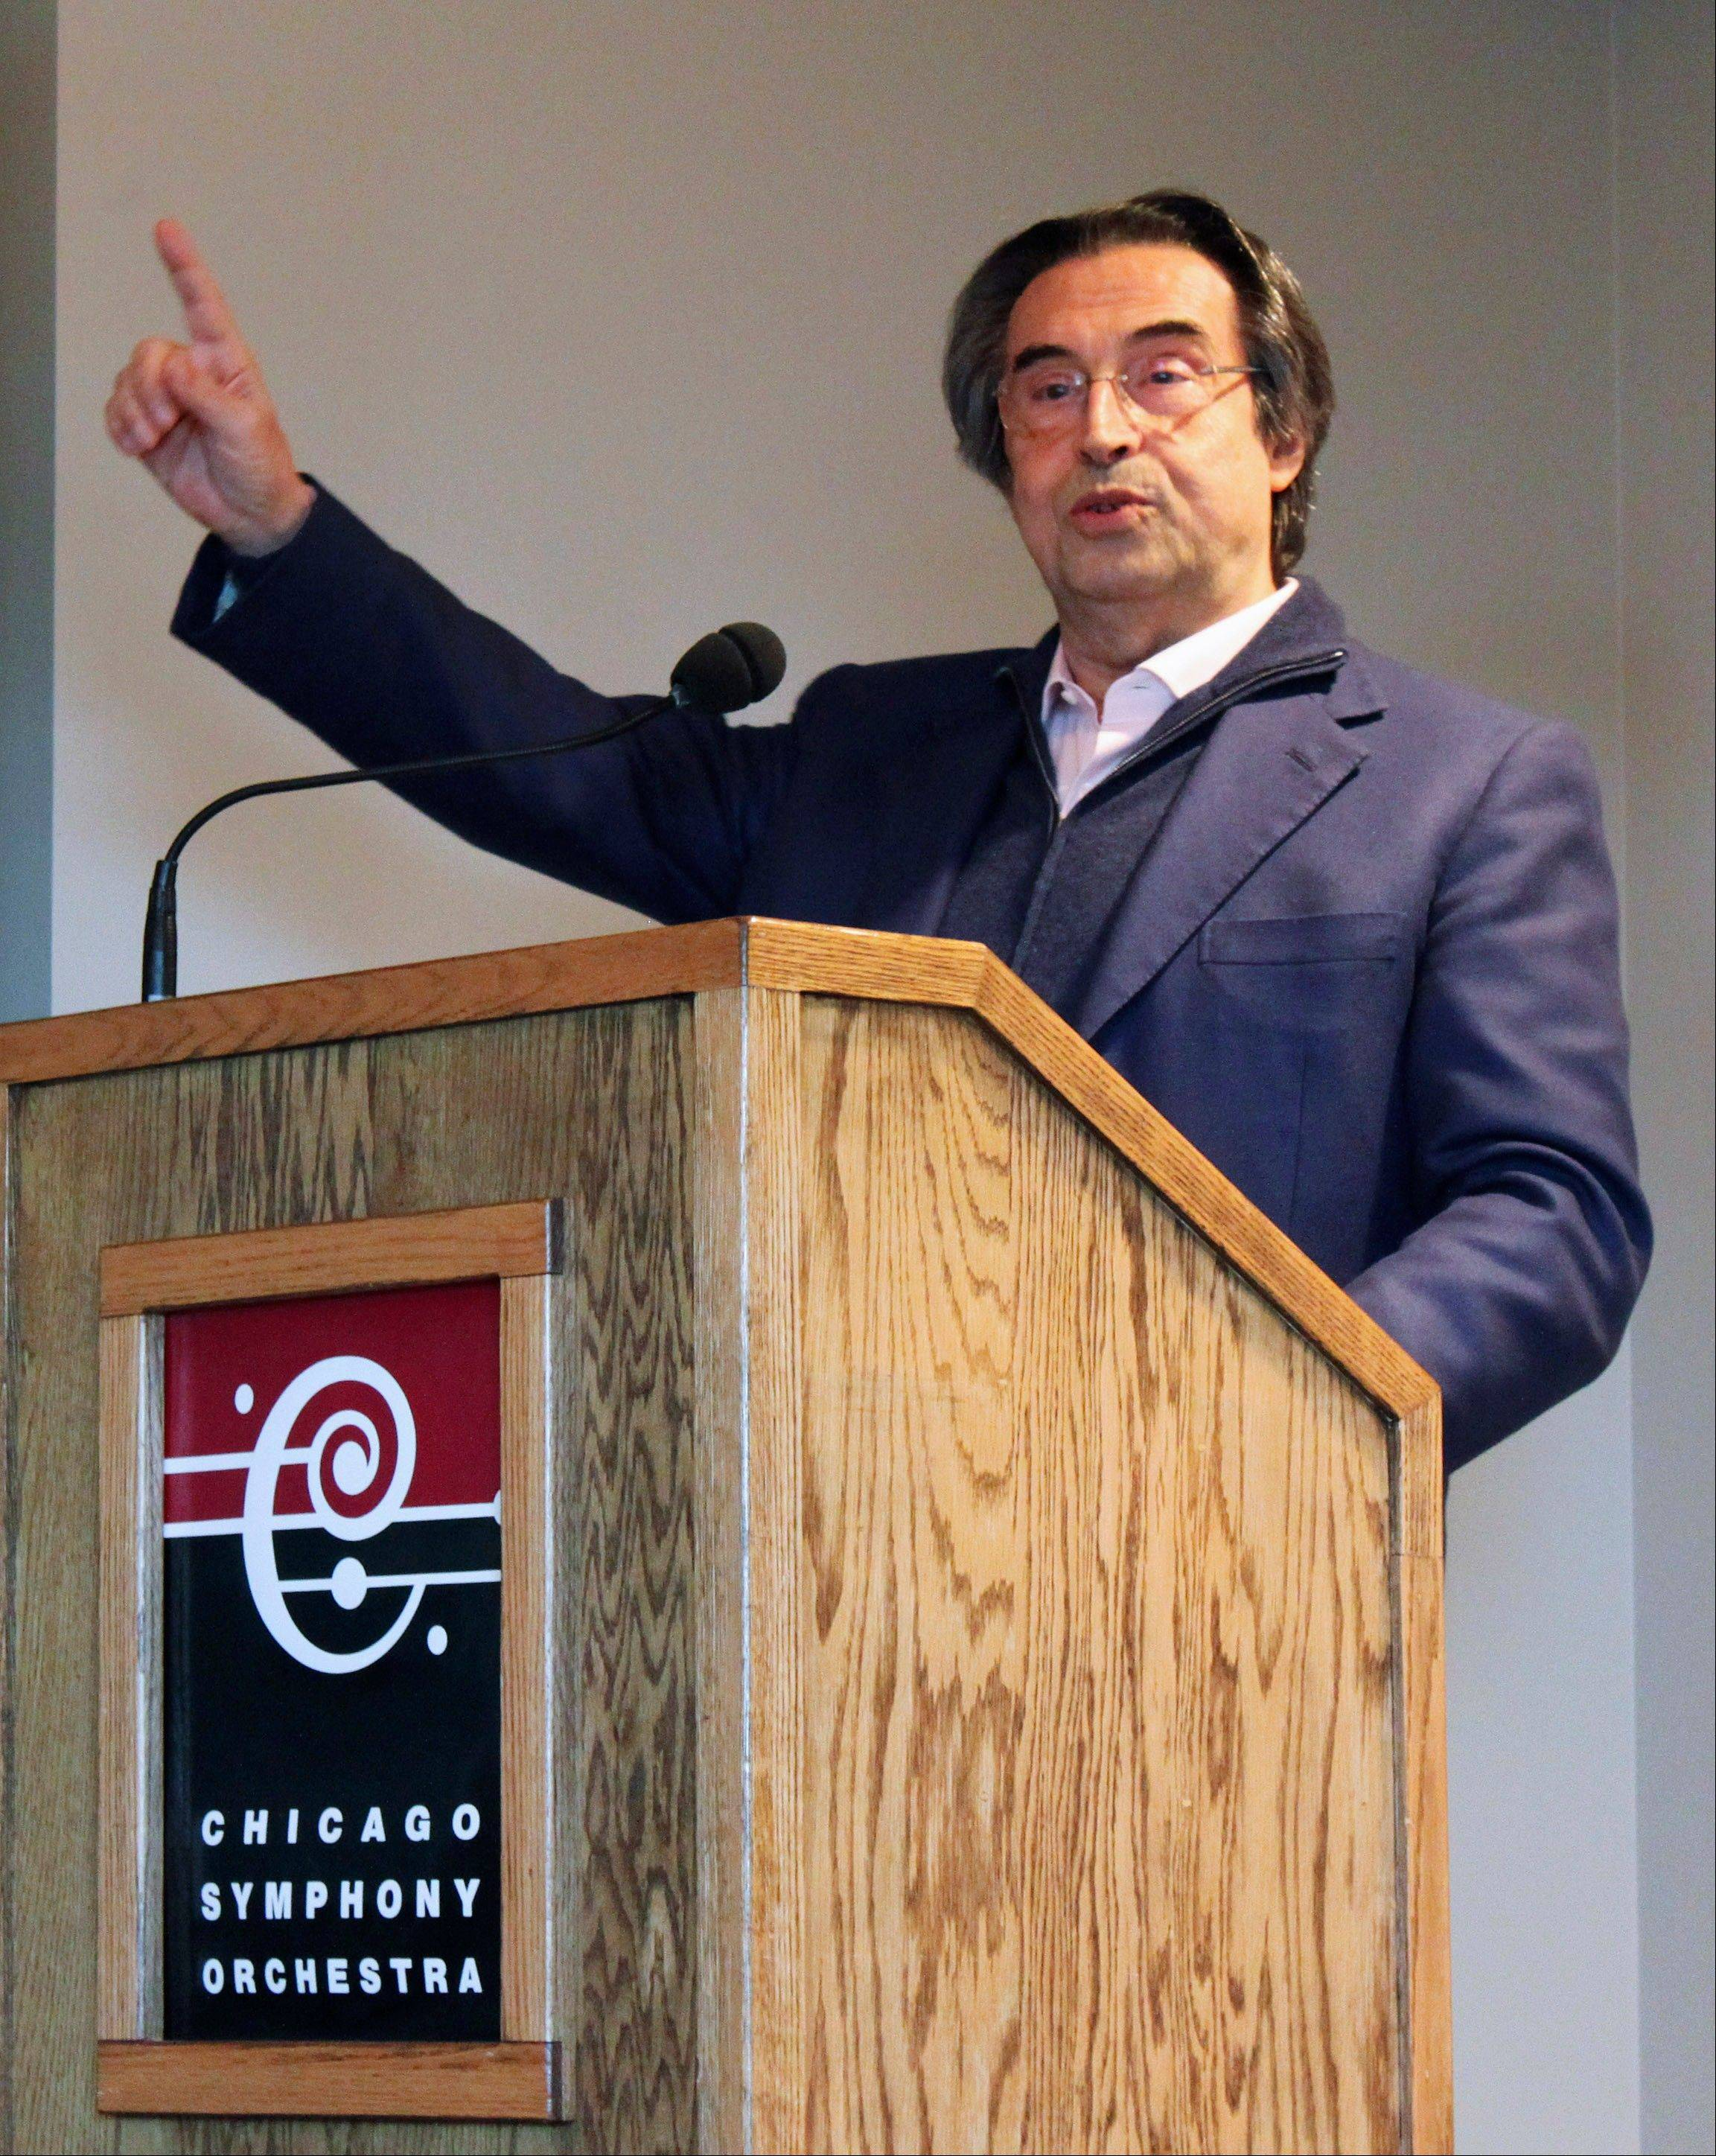 The Chicago Symphony Orchestra and Riccardo Muti announced he has signed another five-year contract, to extend his contract with the symphony through 2020.